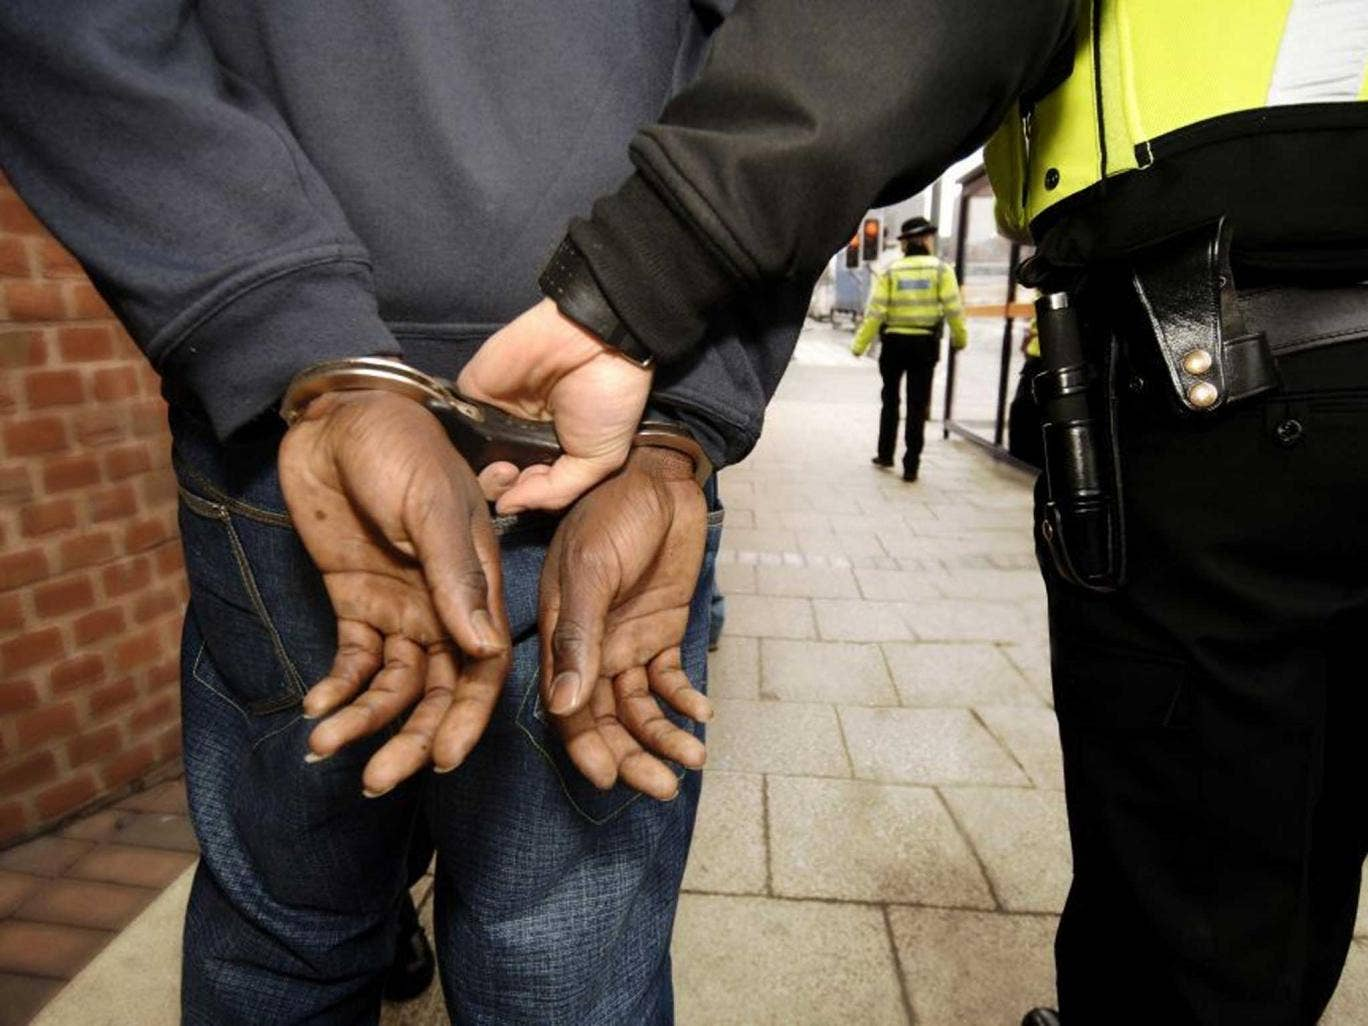 Arrested black people are more likely to go to court than any other ethnic group